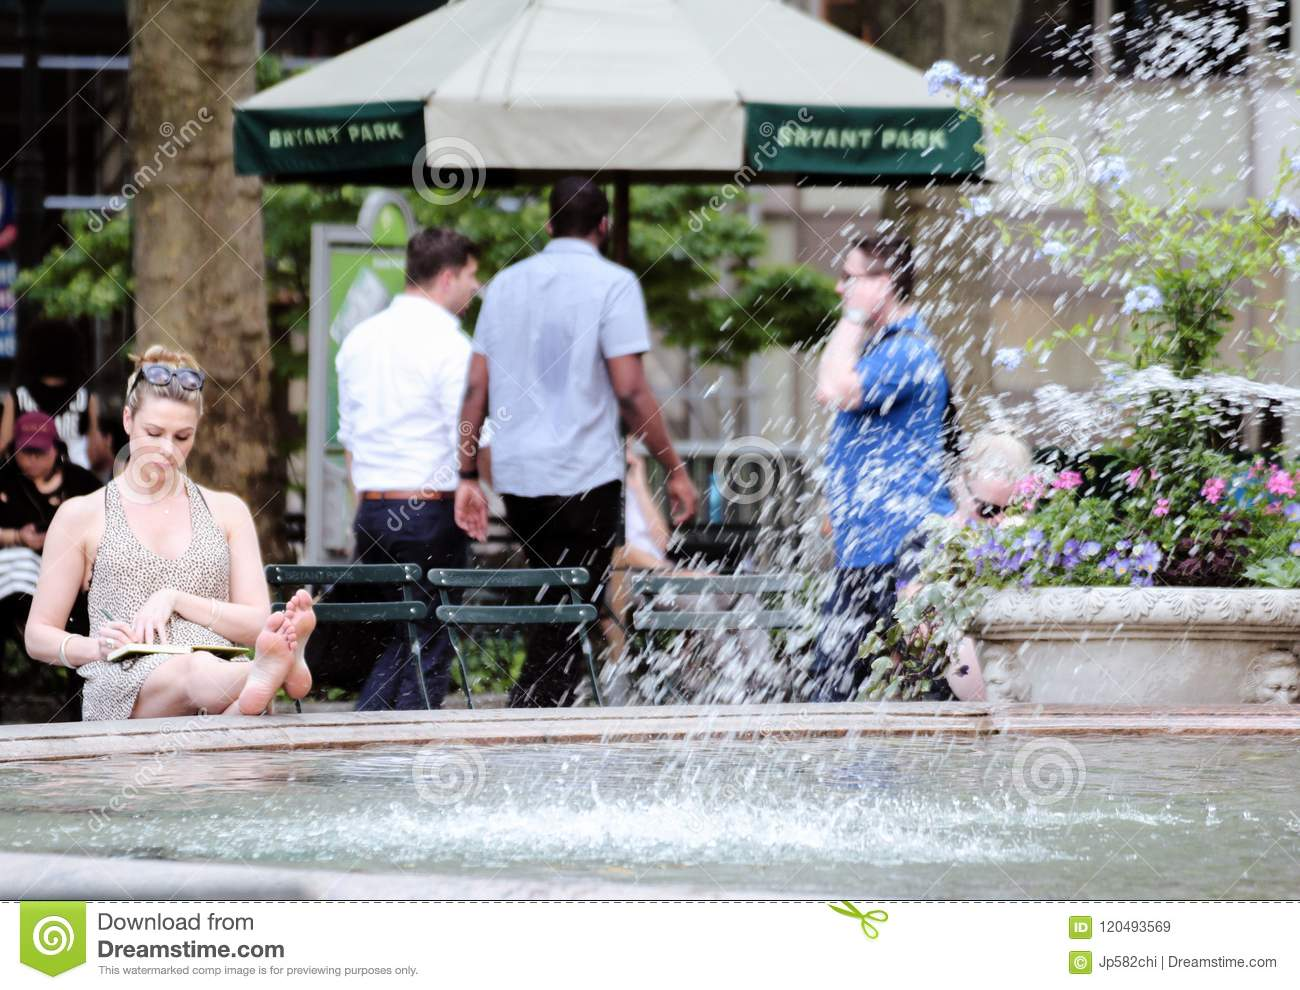 Young Woman Sitting Barefoot by a Fountain, Bryant Park, New York City